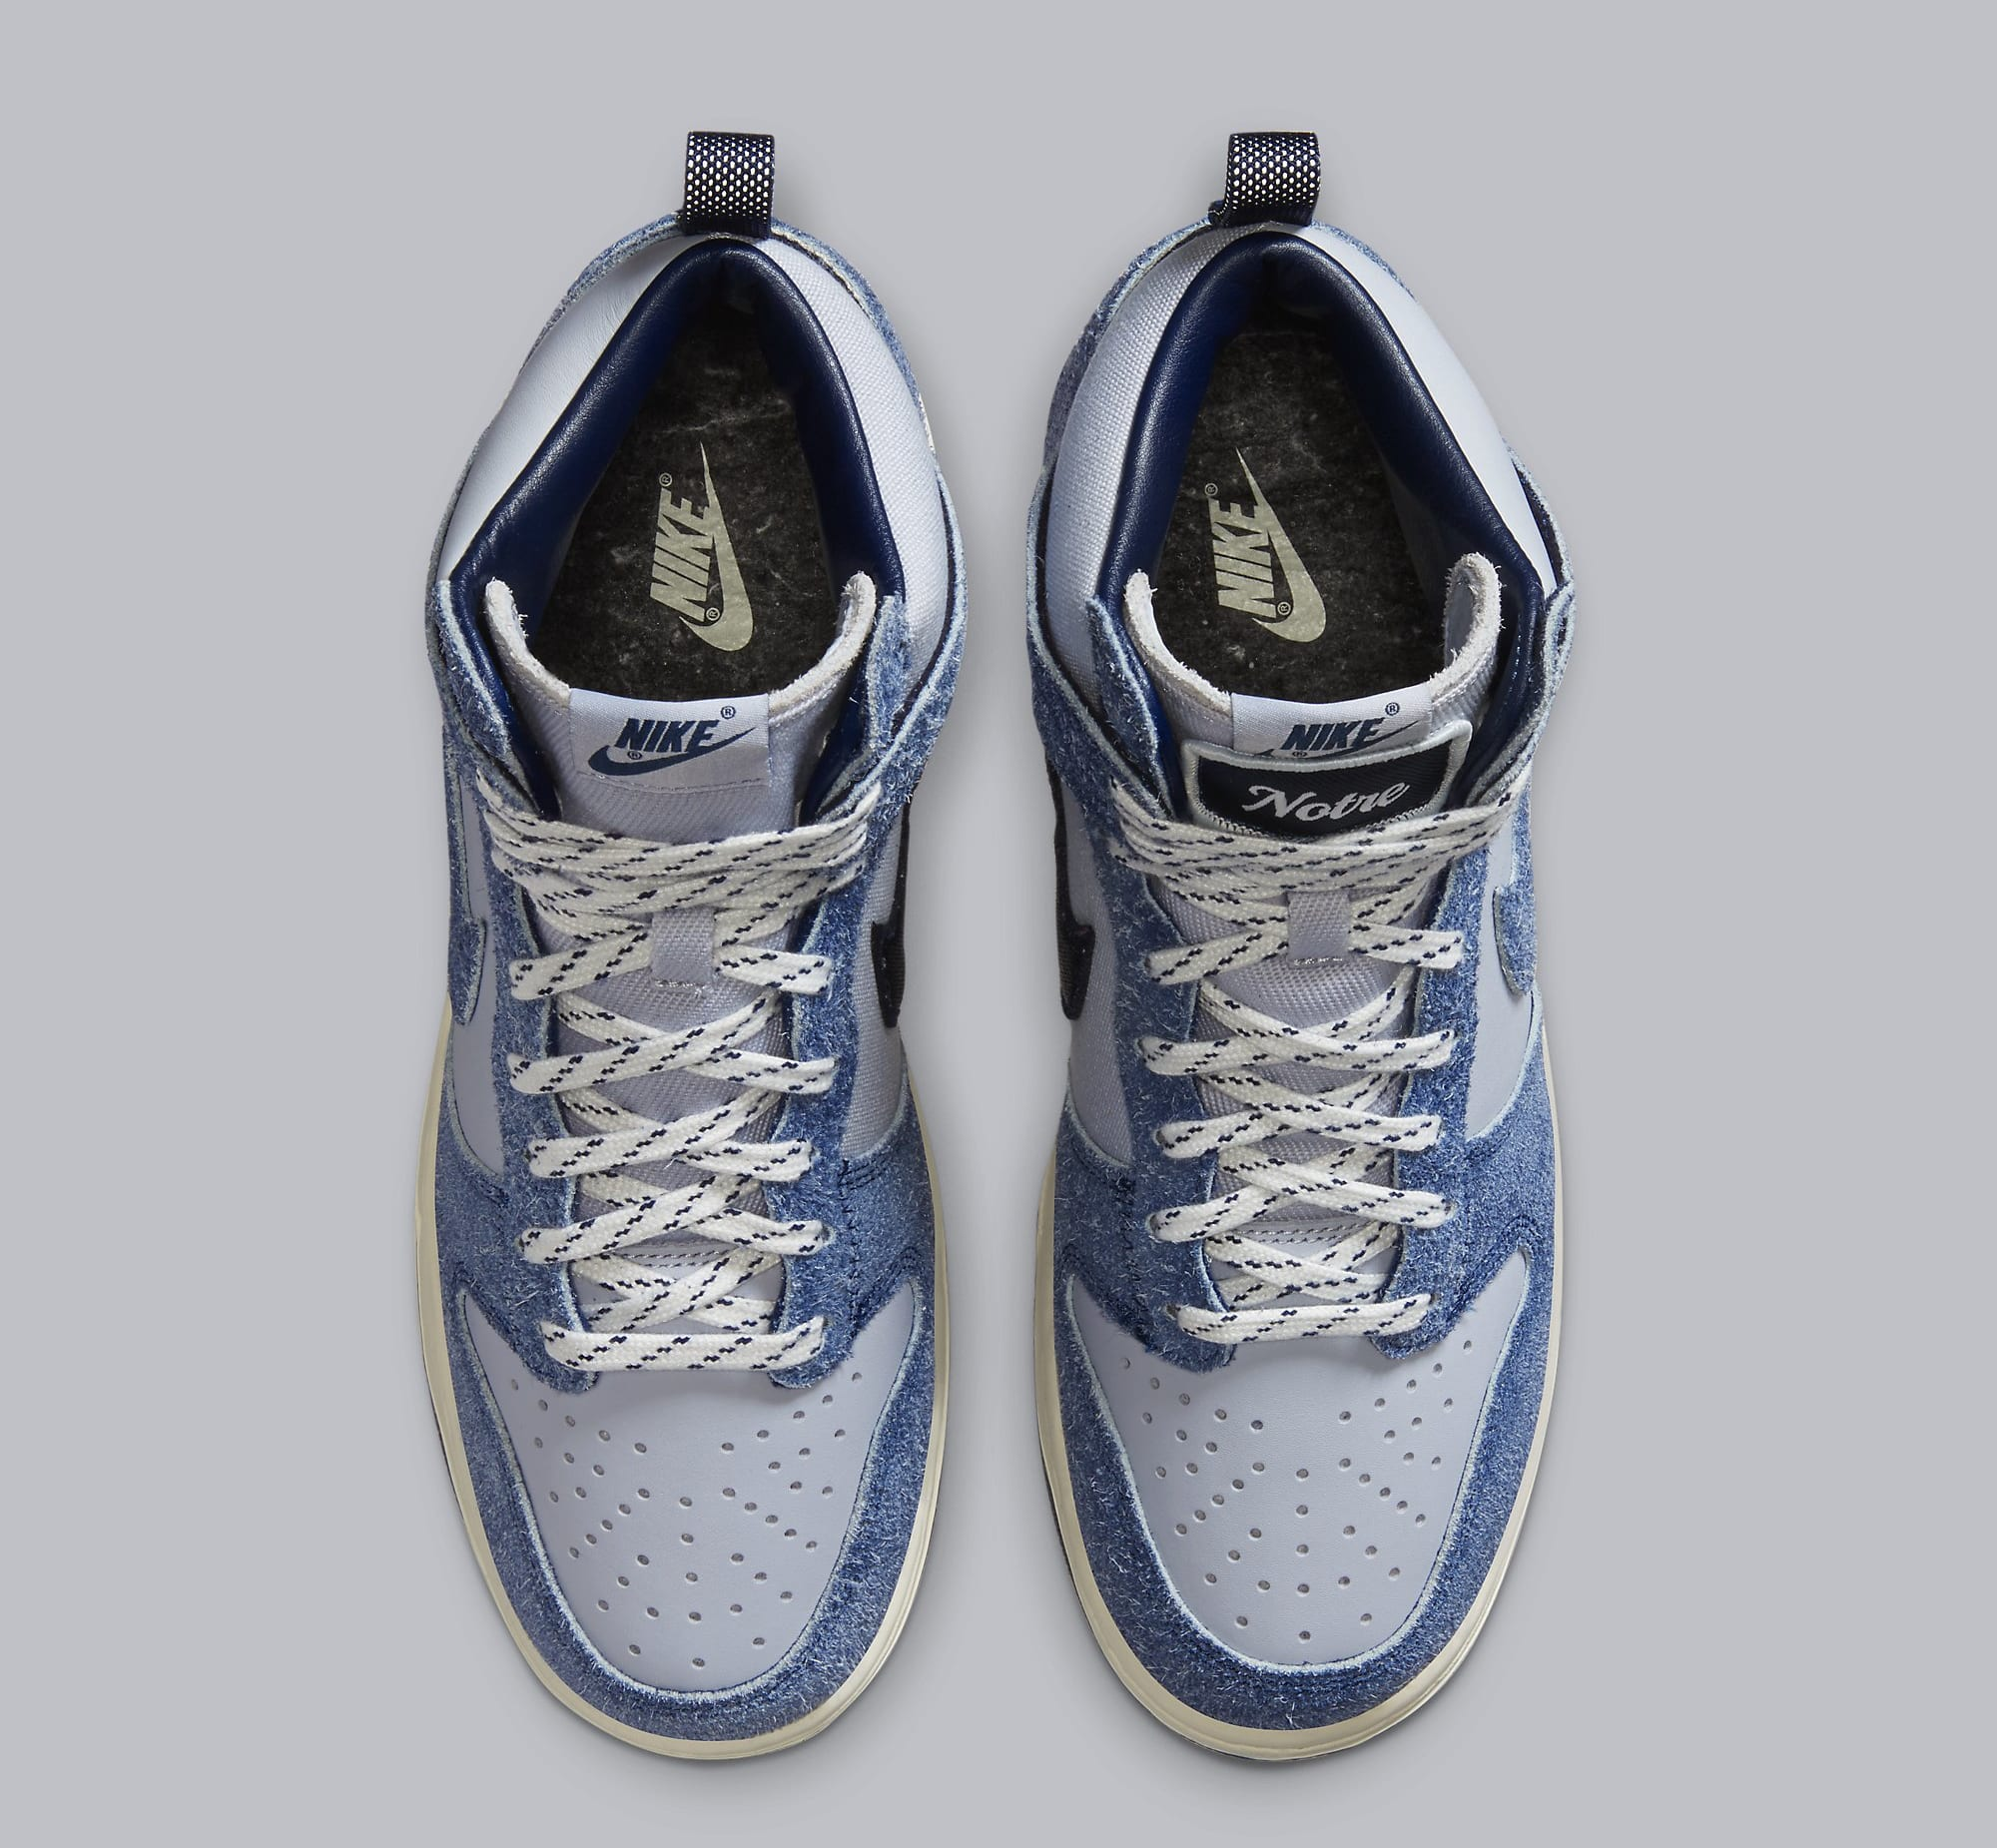 Notre x Nike Dunk High 'Pearl White/Blue Void/Grand Purple' CW3092-400 (Top)